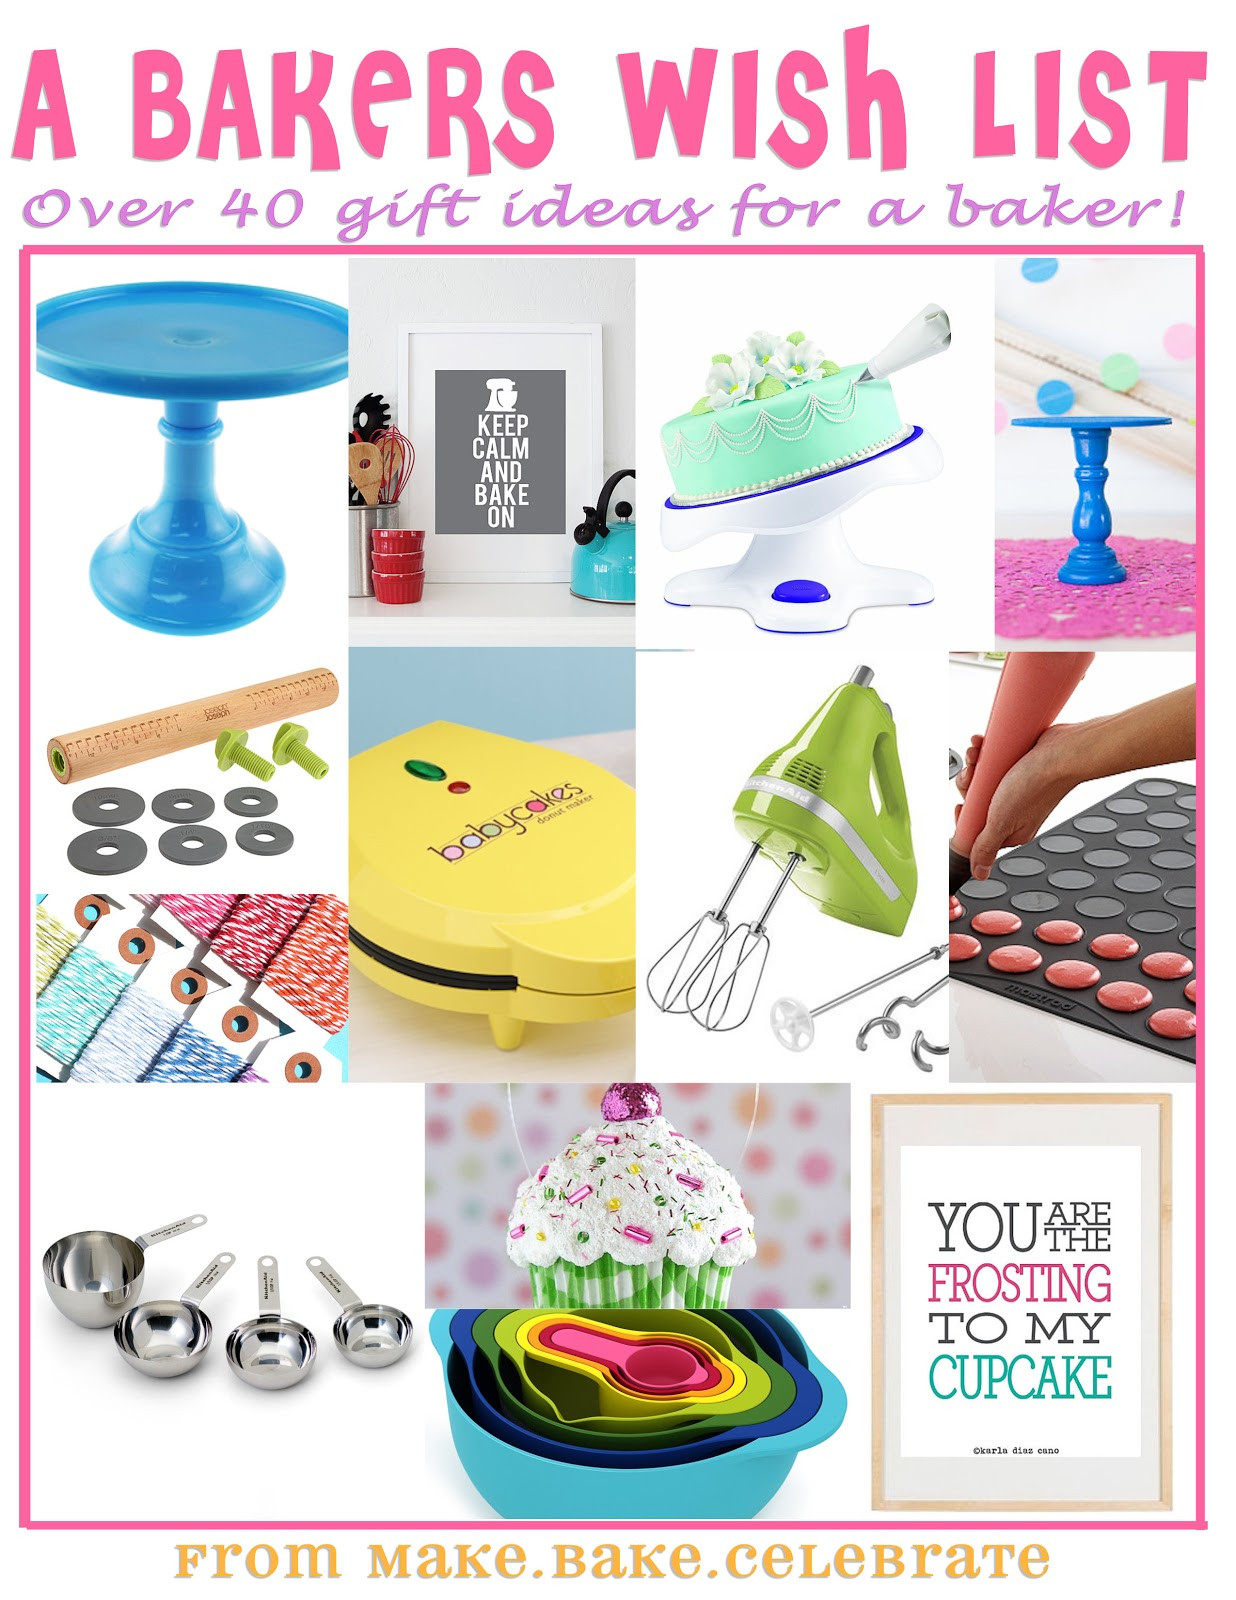 Best ideas about Baker Gift Ideas . Save or Pin MBC Santa baby 40 different baker t ideas Now.